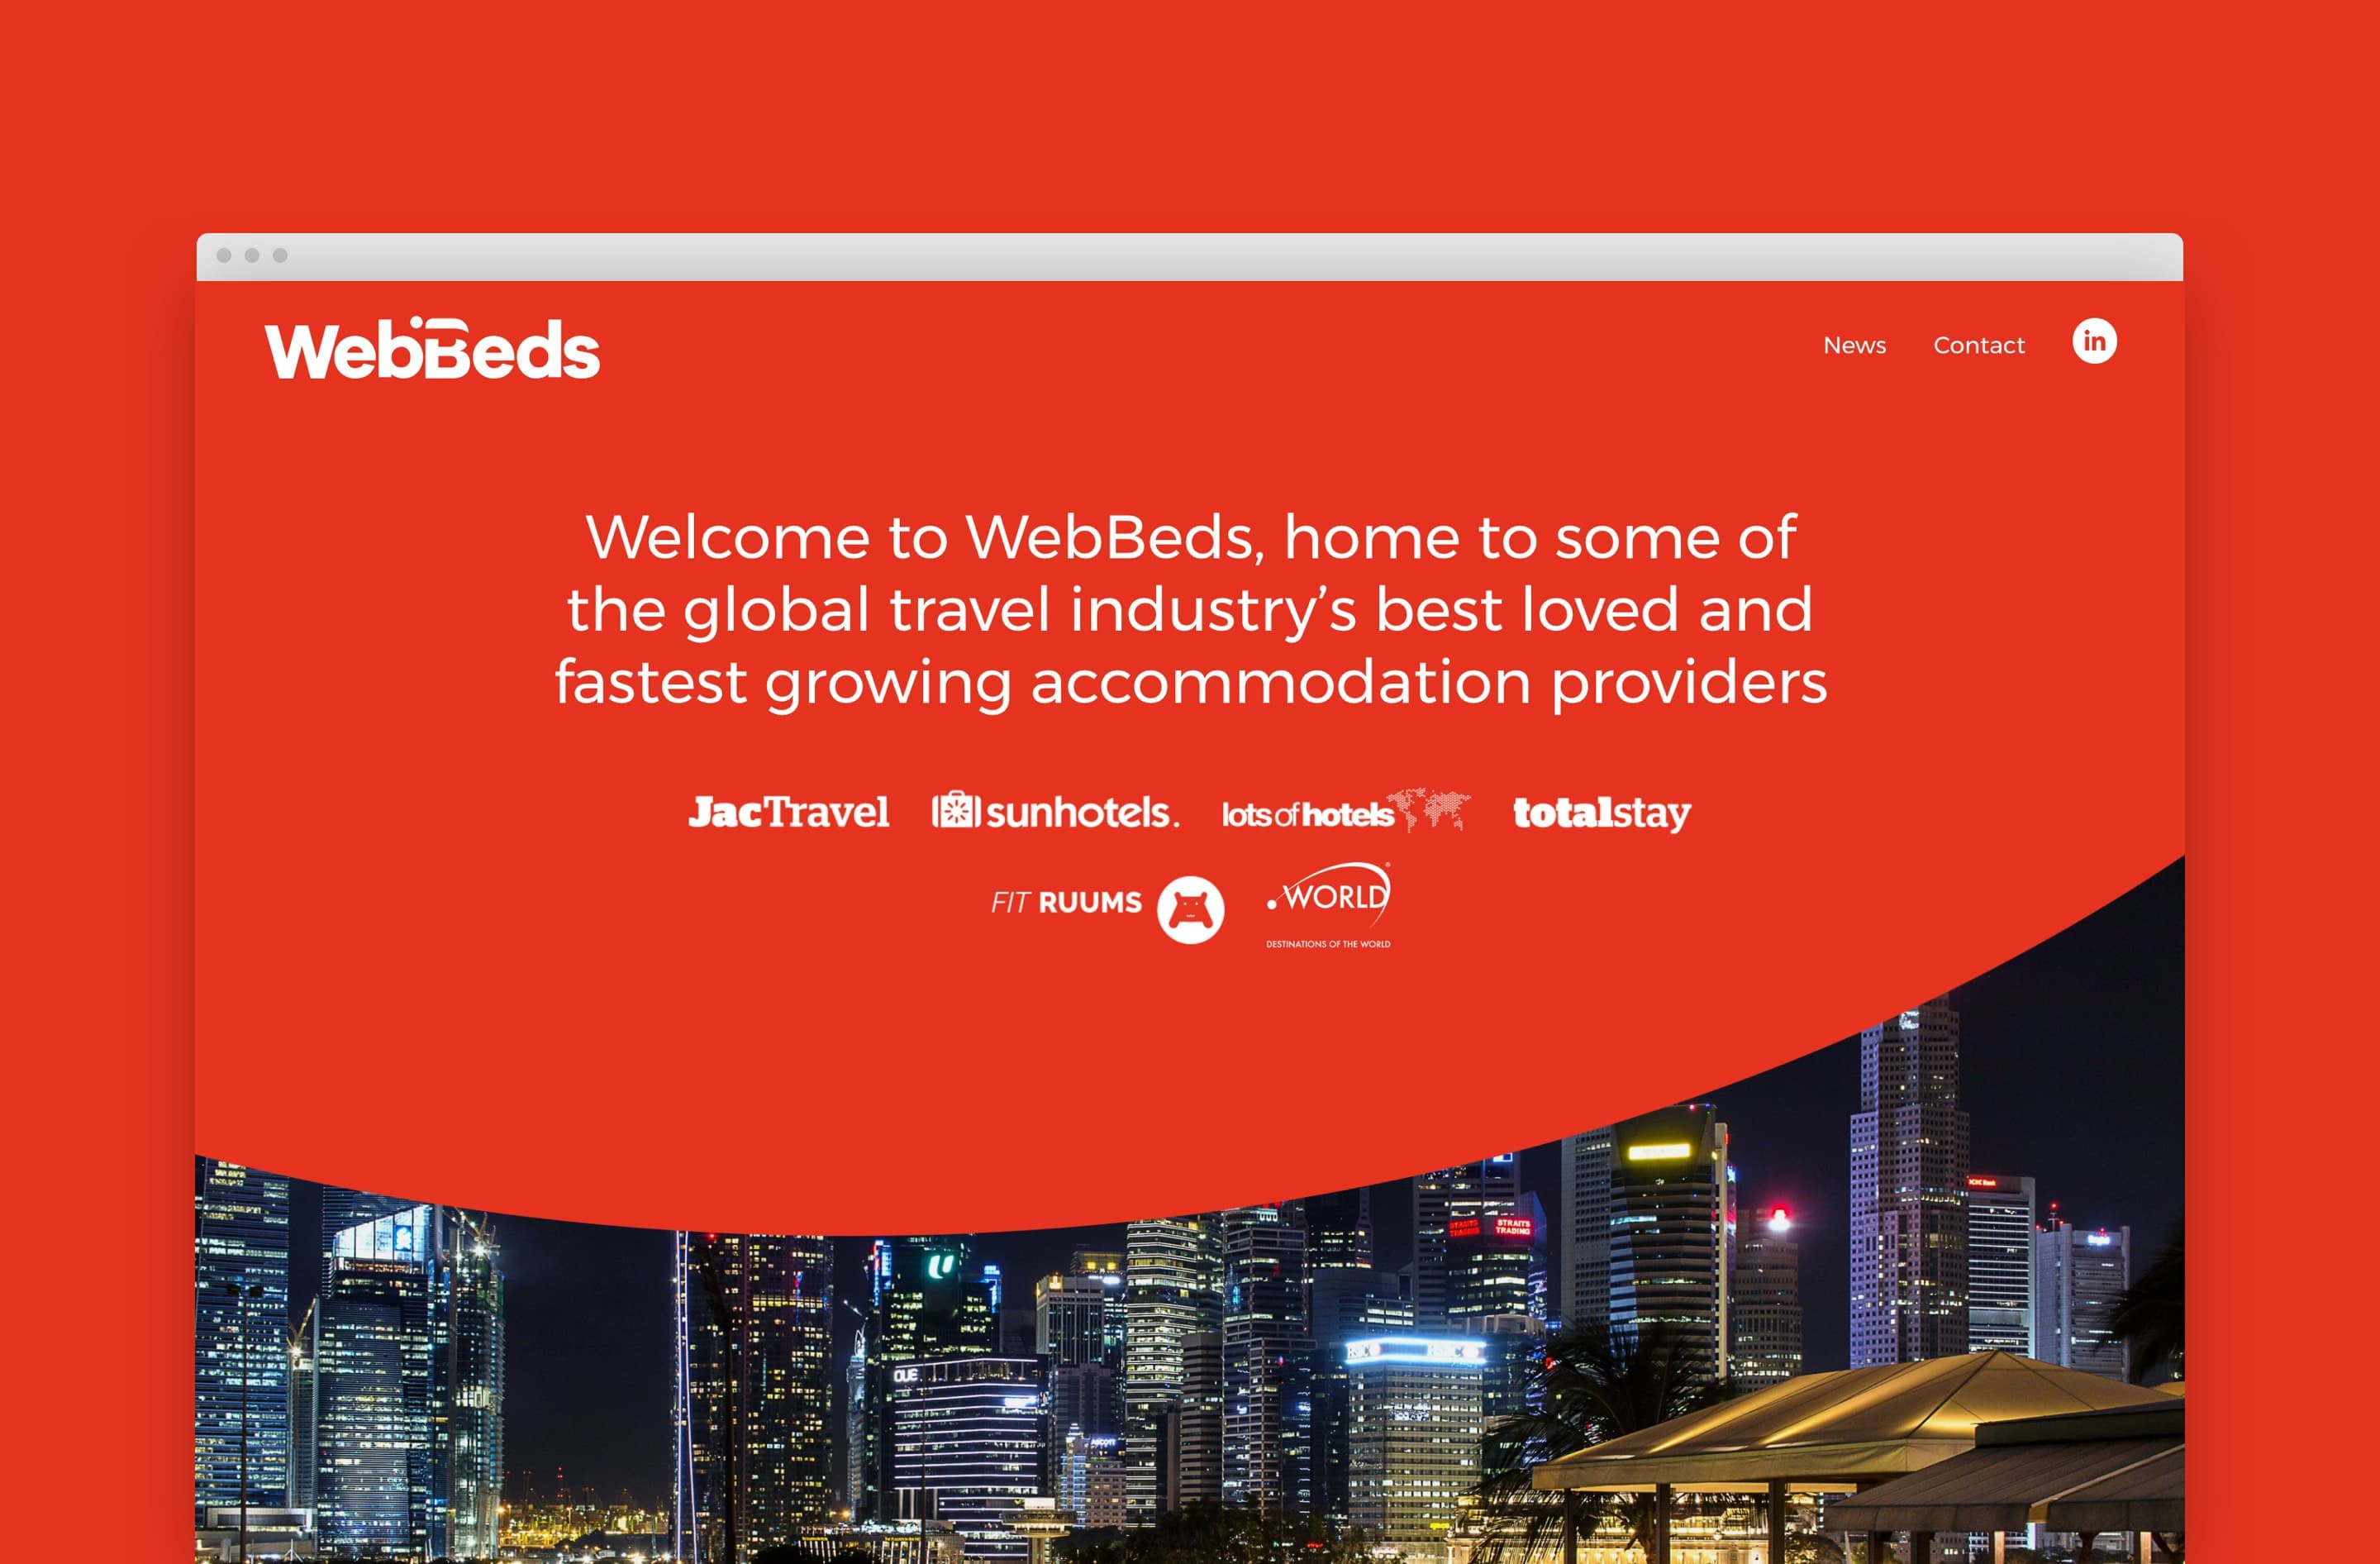 WebBeds website design